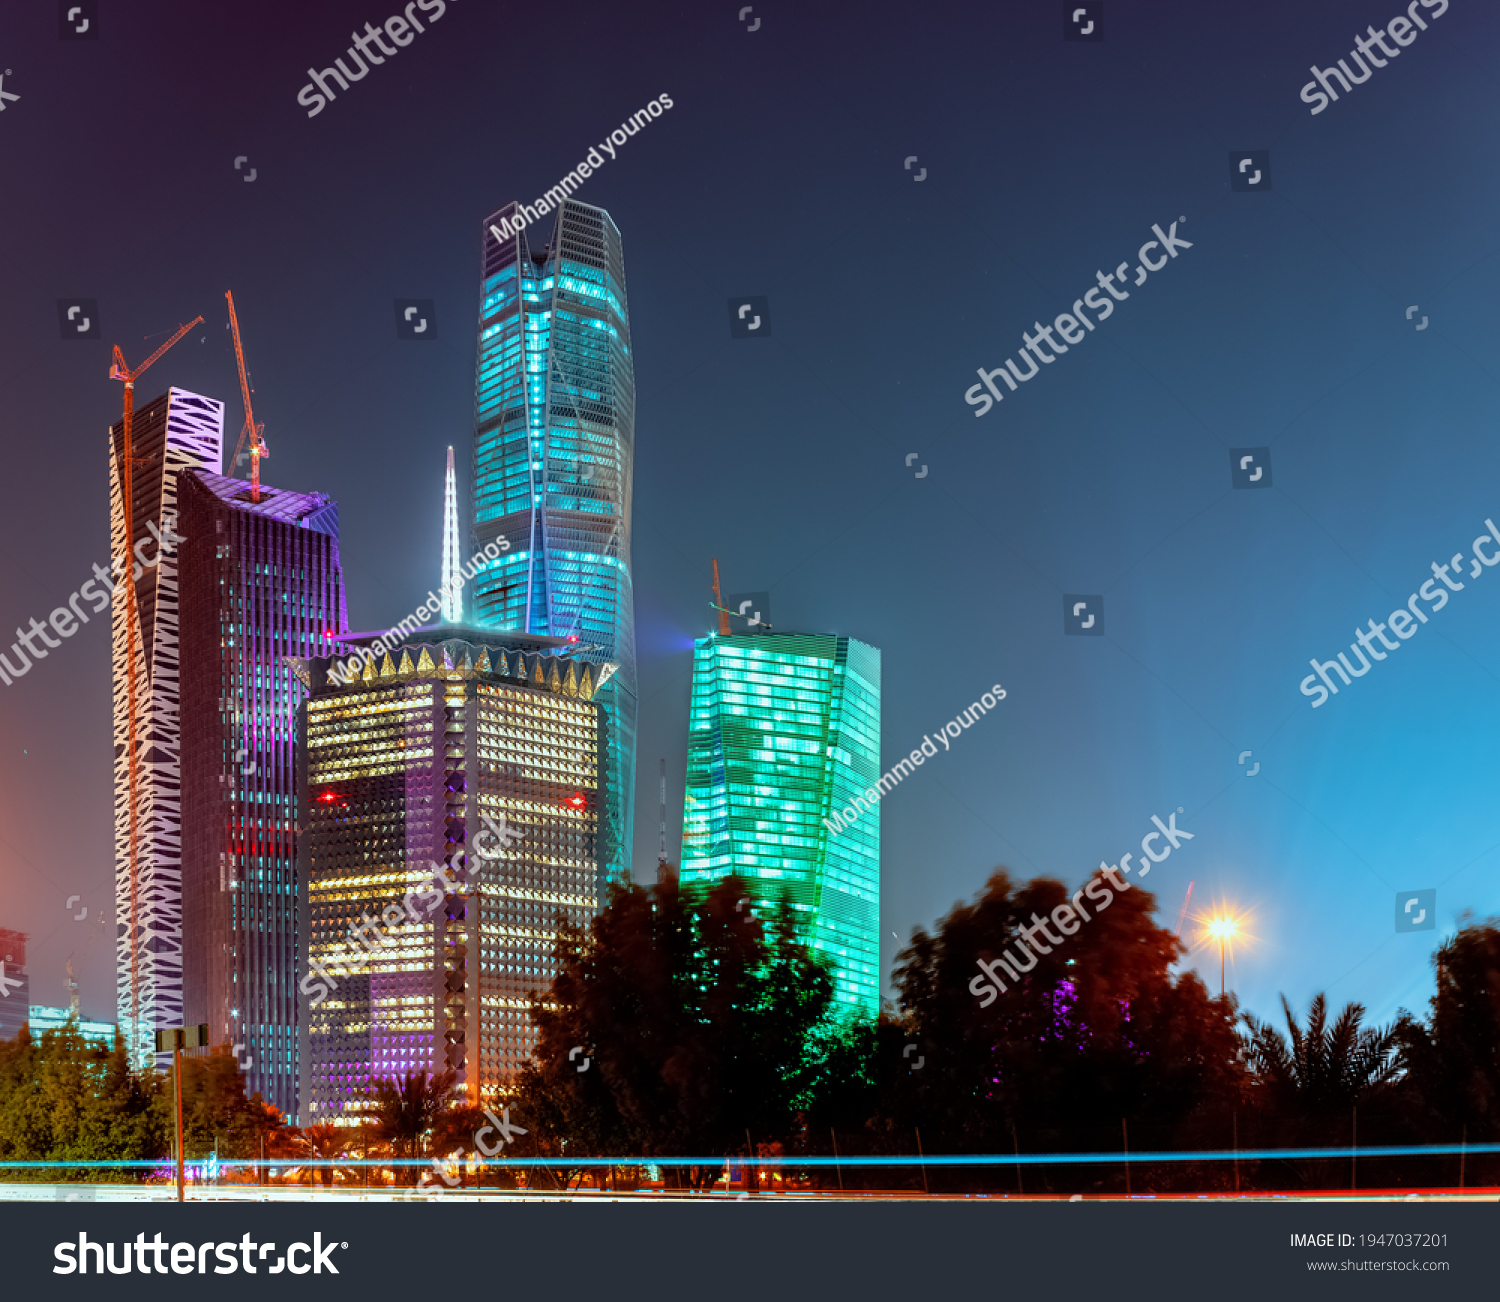 Large buildings equipped with the latest technology, King Abdullah Financial District, in the capital, Riyadh, Saudi Arabia #1947037201